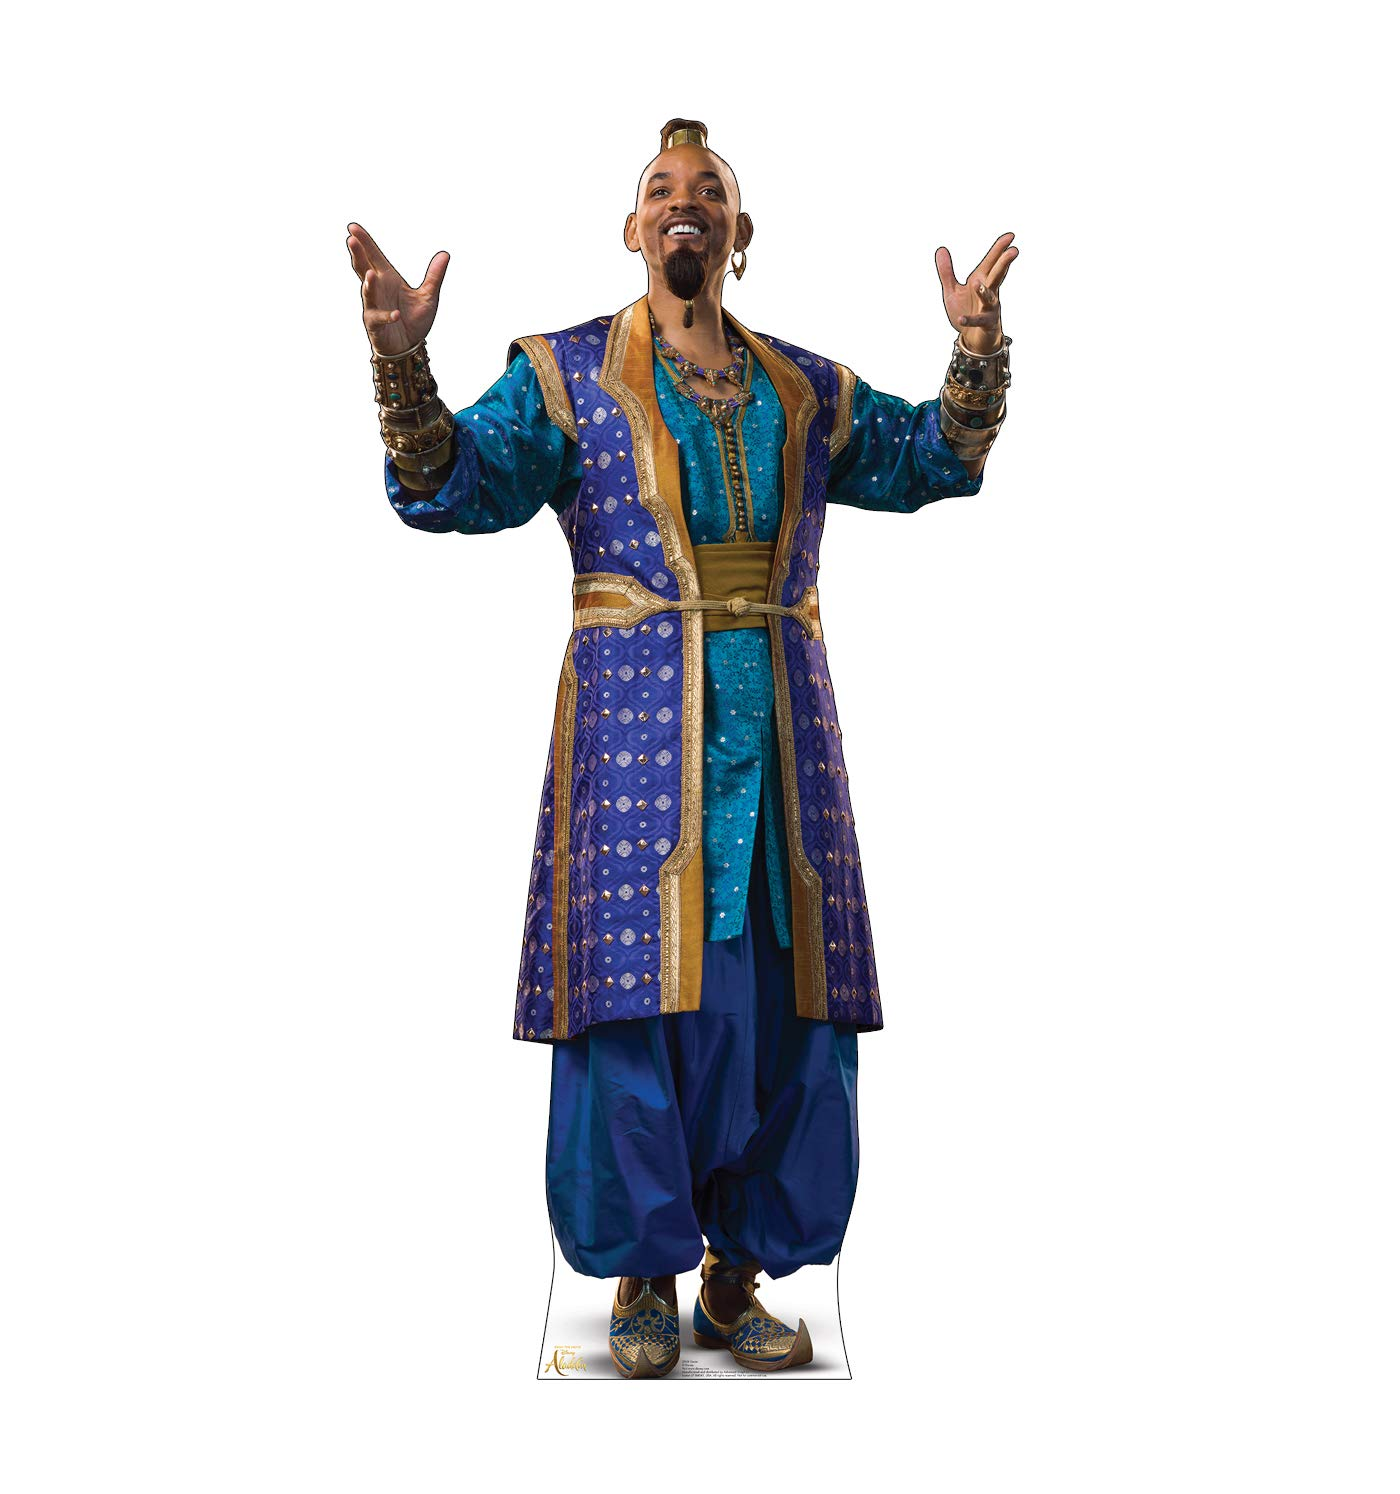 Advanced Graphics Genie Life Size Cardboard Cutout Standup - Disney's Aladdin (2019 Live Action Film)